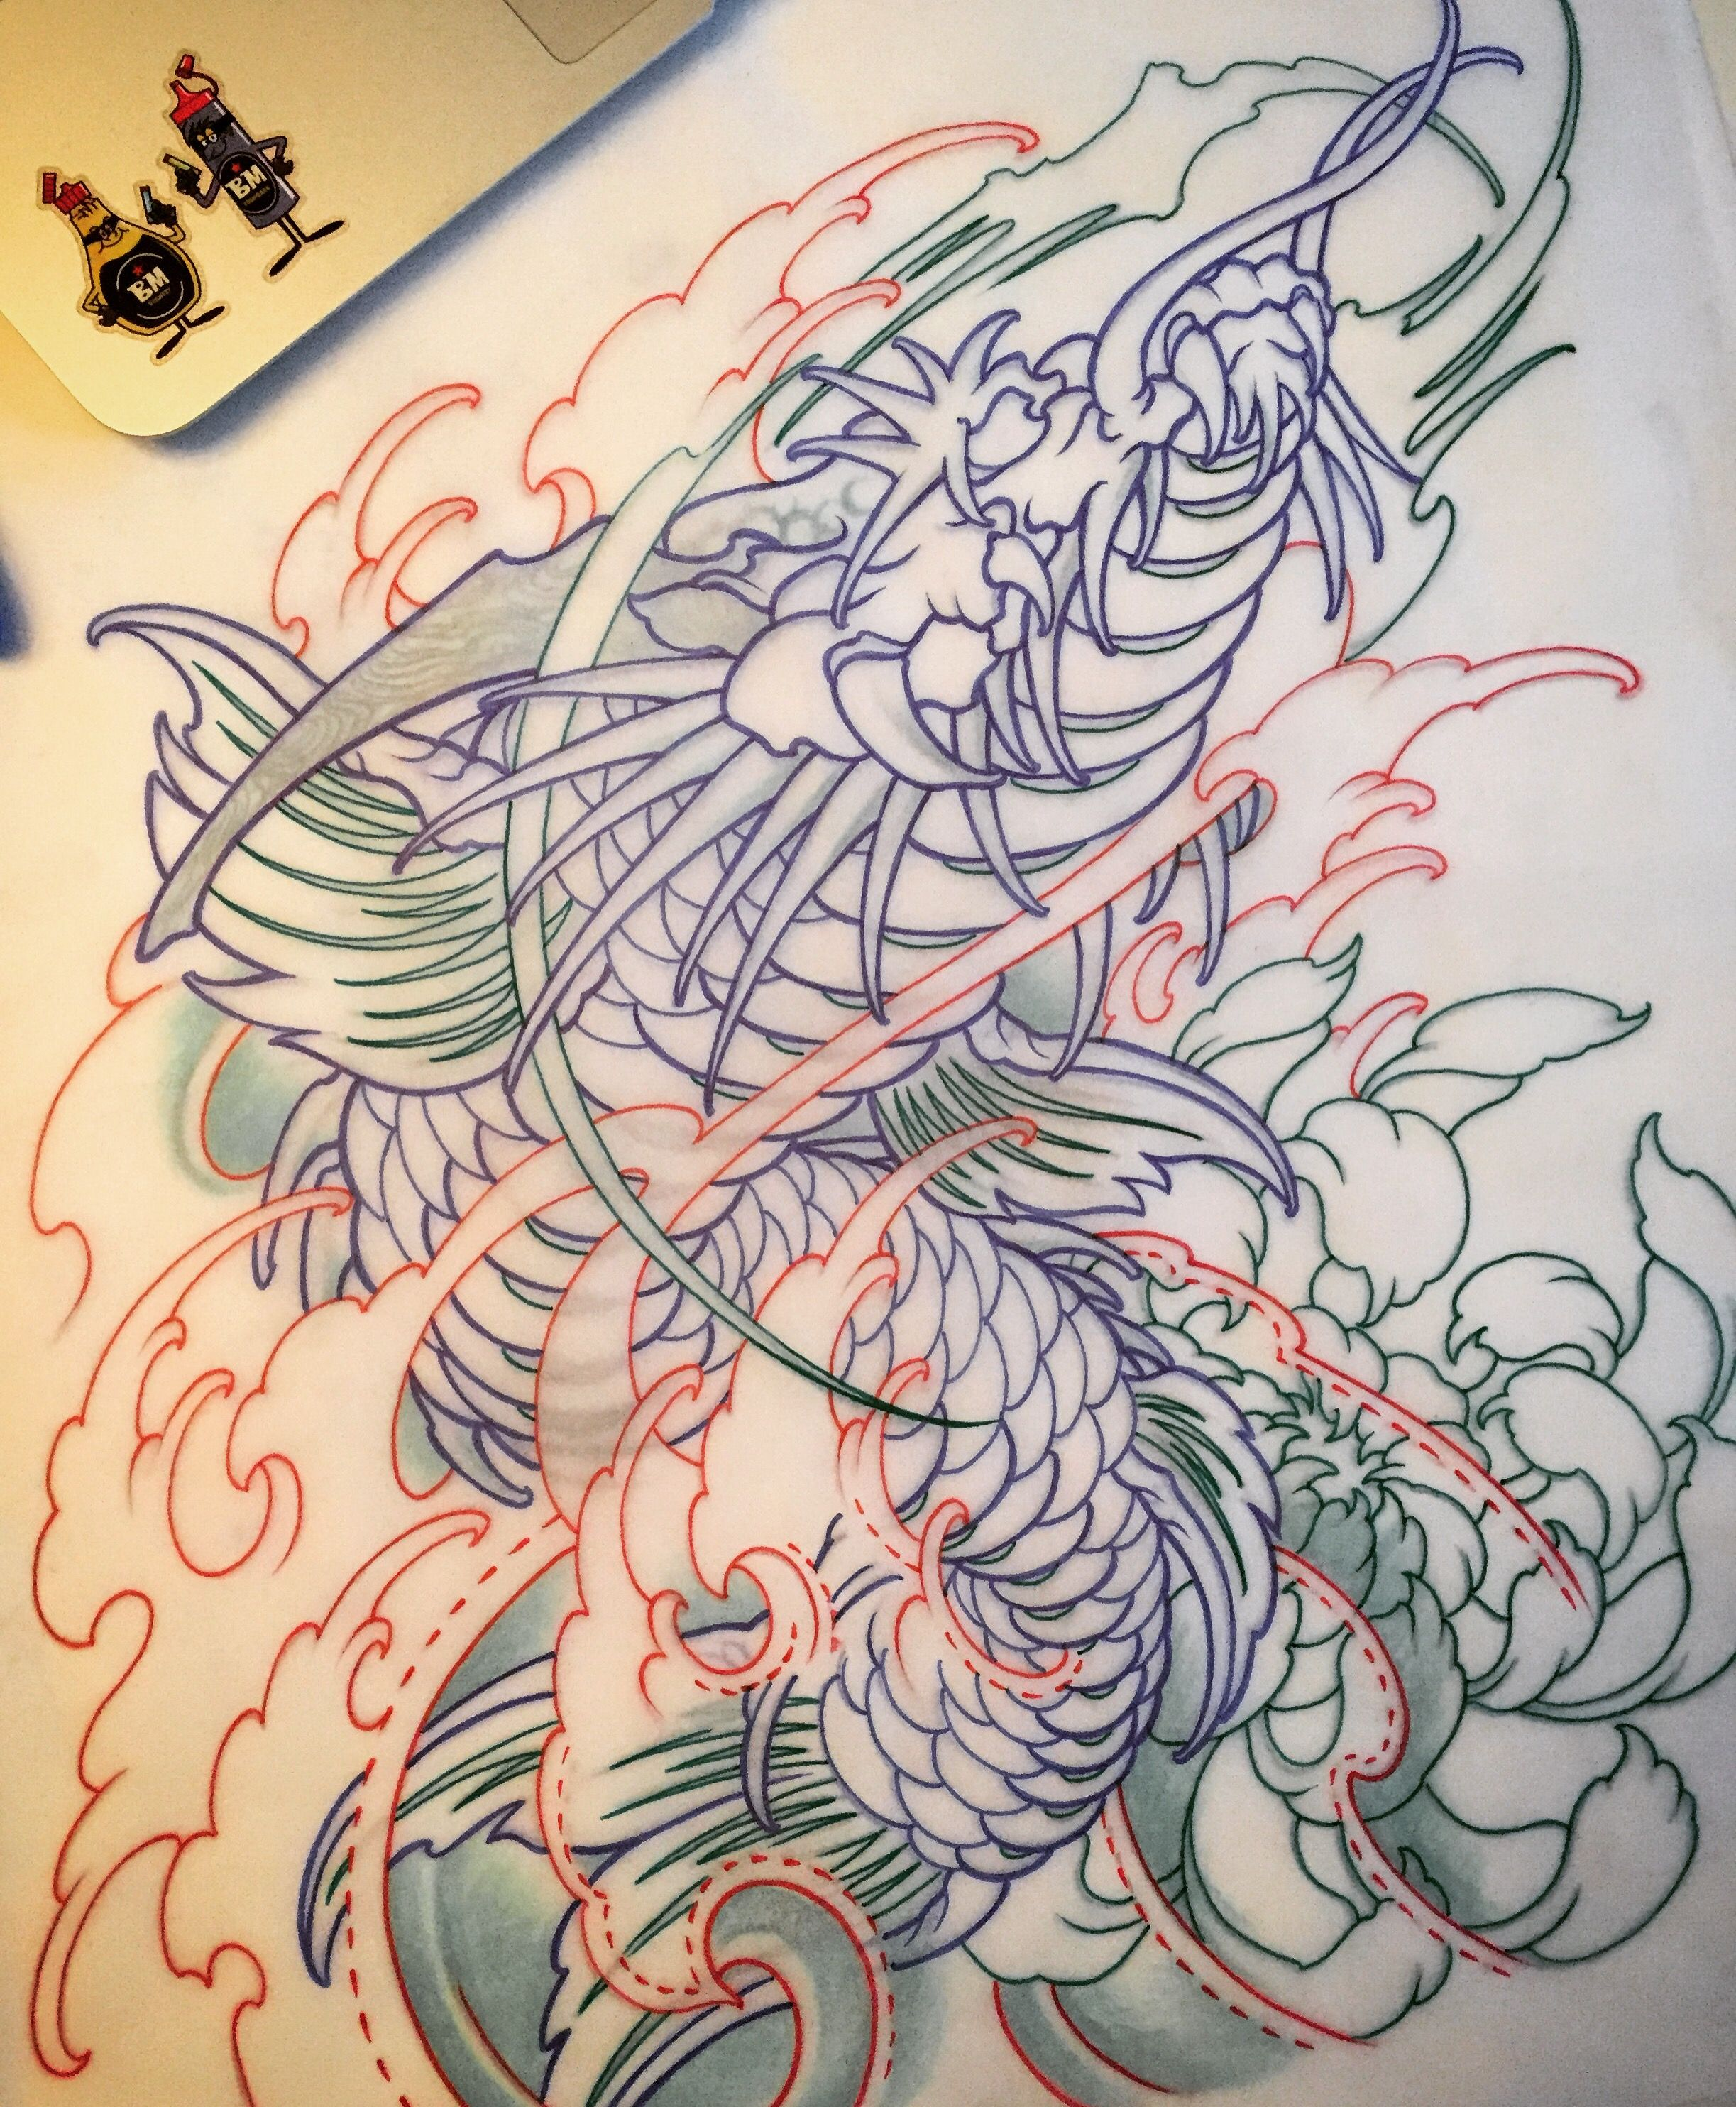 Amsterdam tattoo 1825 kimihito koi dragon japanese style for Japanese koi design